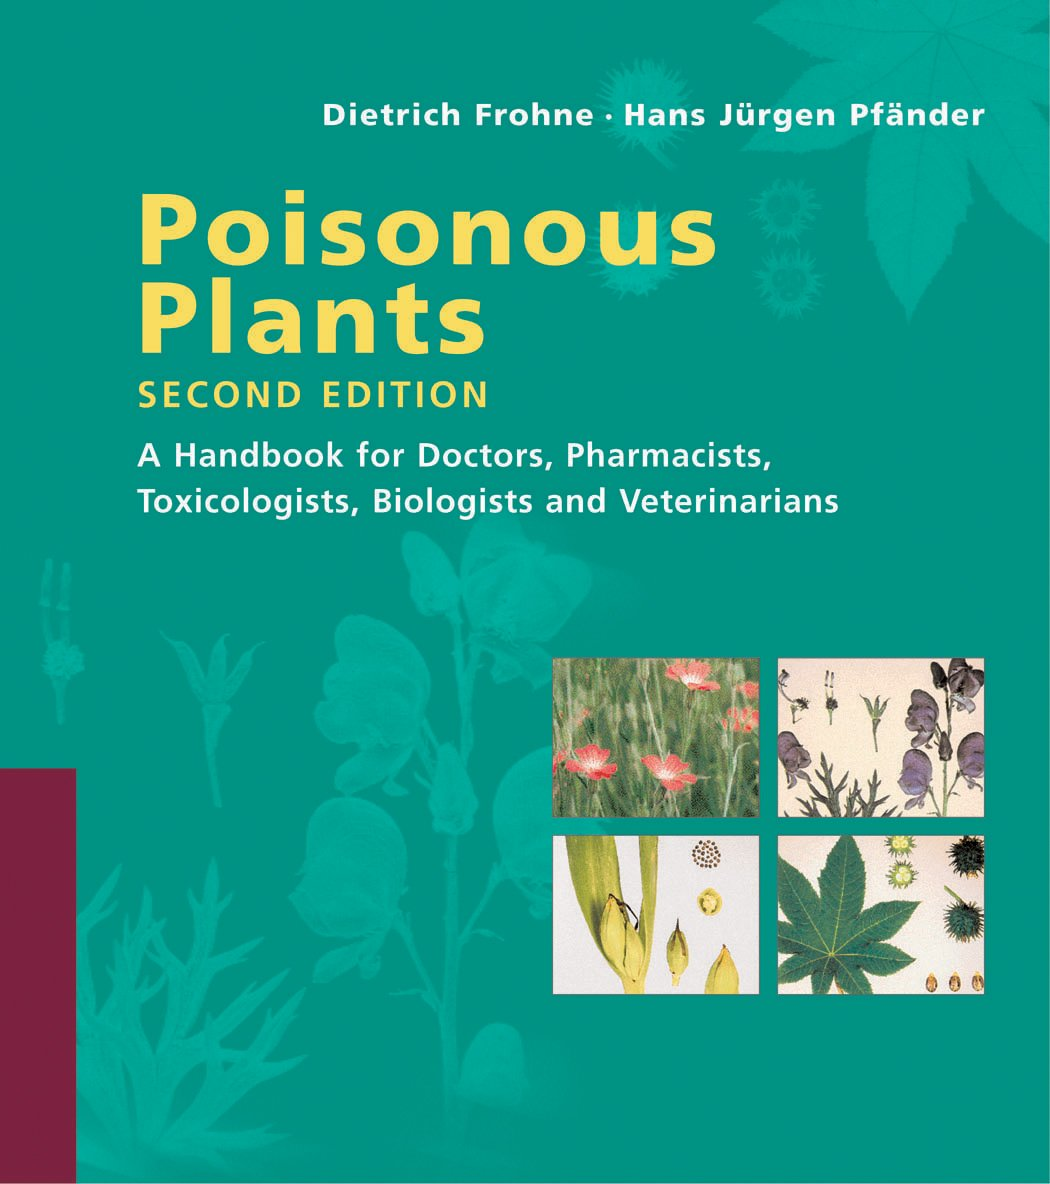 Poisonous Plants: A Handbook for Doctors, Pharmacists, Toxicologists, Biologists and Veterinarians by Brand: Timber Press